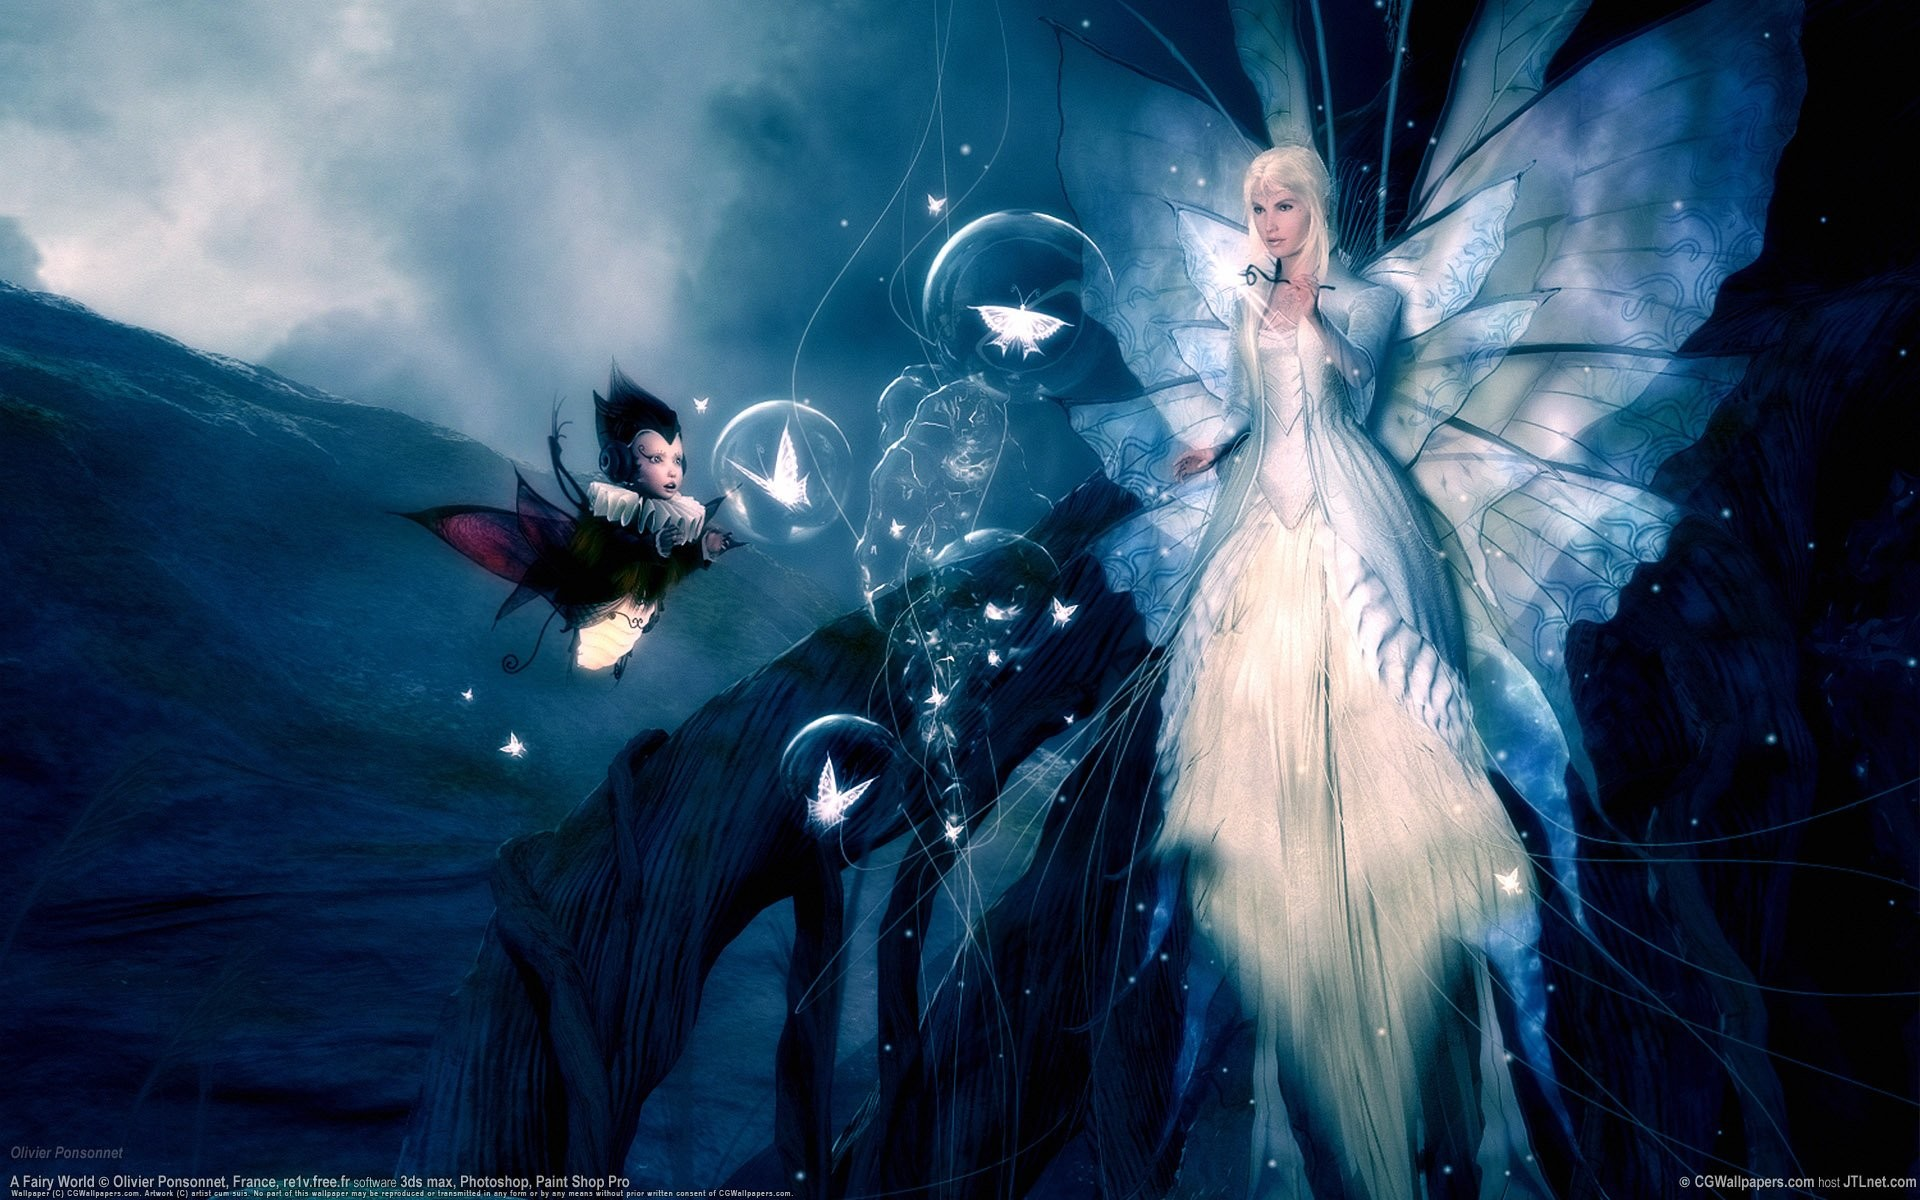 1920x1200 Image size: Album: Fairies Girls Images in Album: Category: Magical Pictures;  Angel And Fairy, Black Butterfly Girl, Blue Fairy Of Flower, Dance and  others.